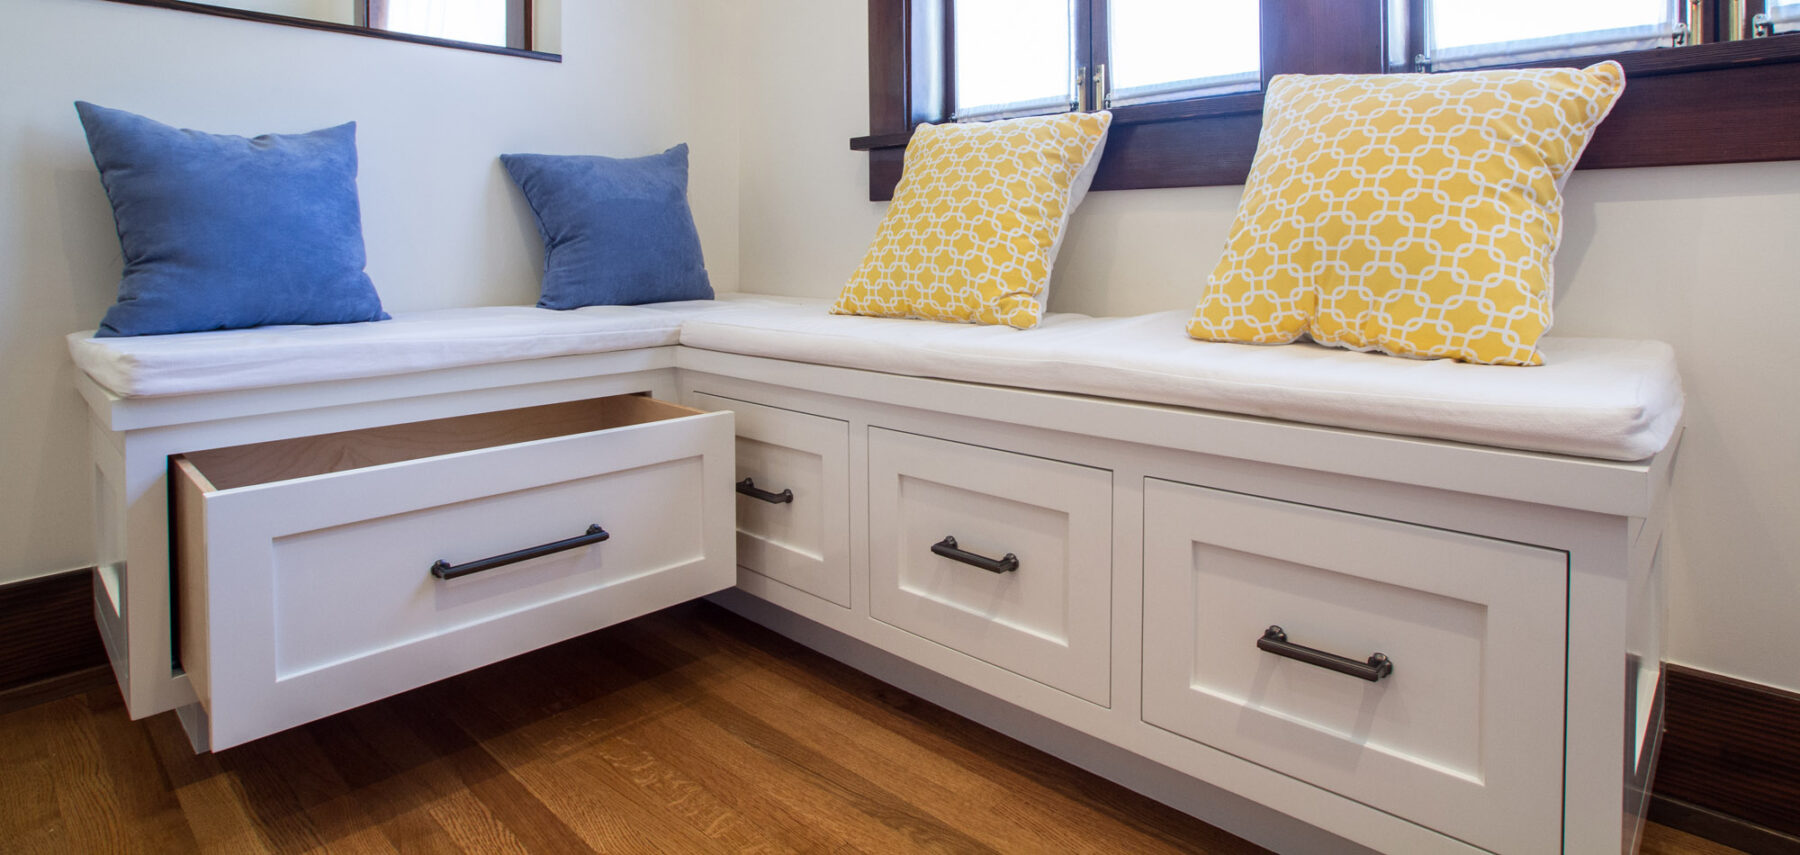 Breakfast nook bench seating drawers